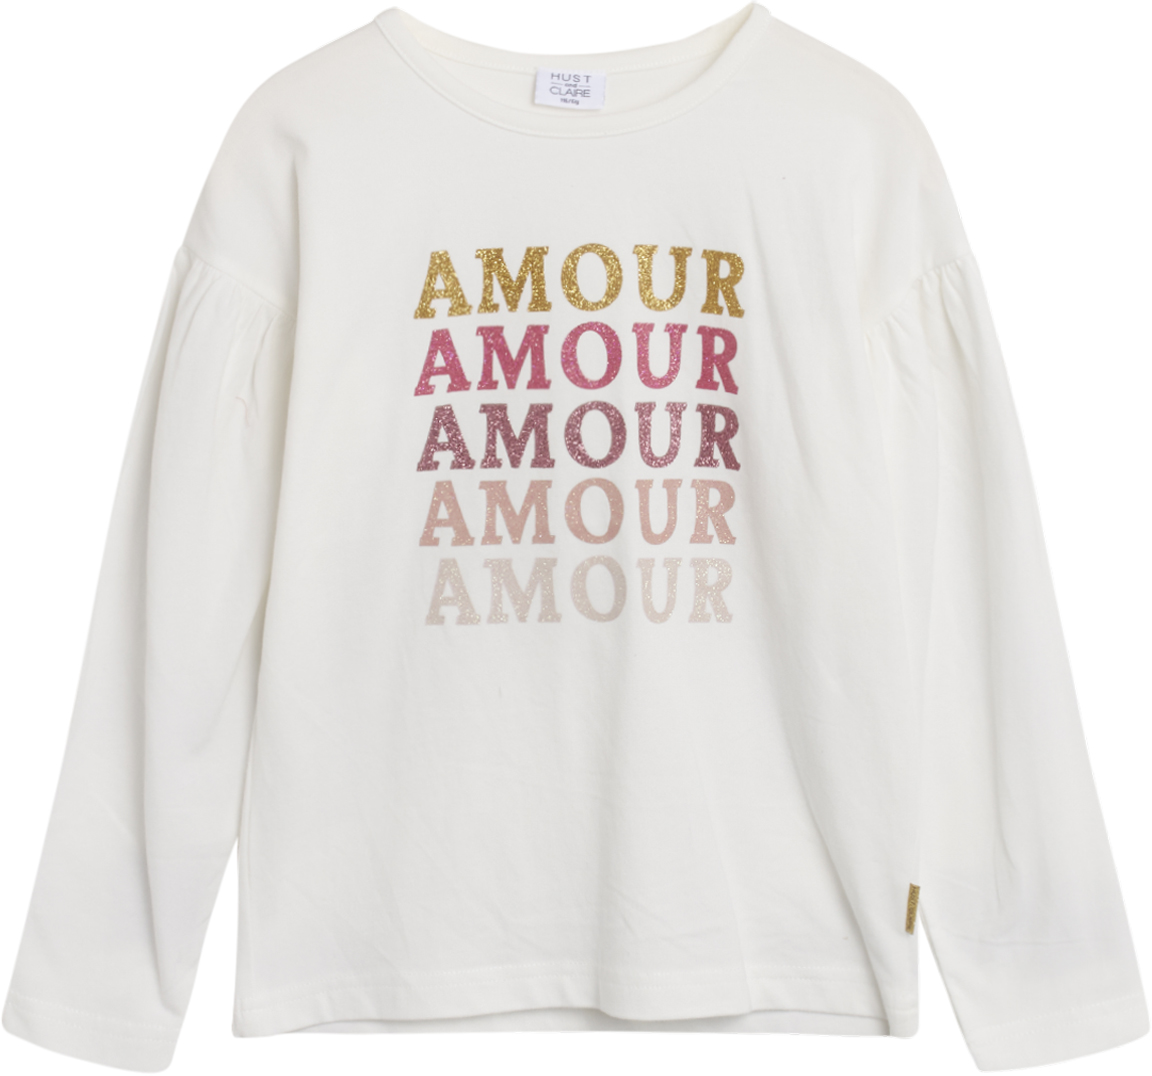 Hust & Claire Aio t-shirt, ivory, 116